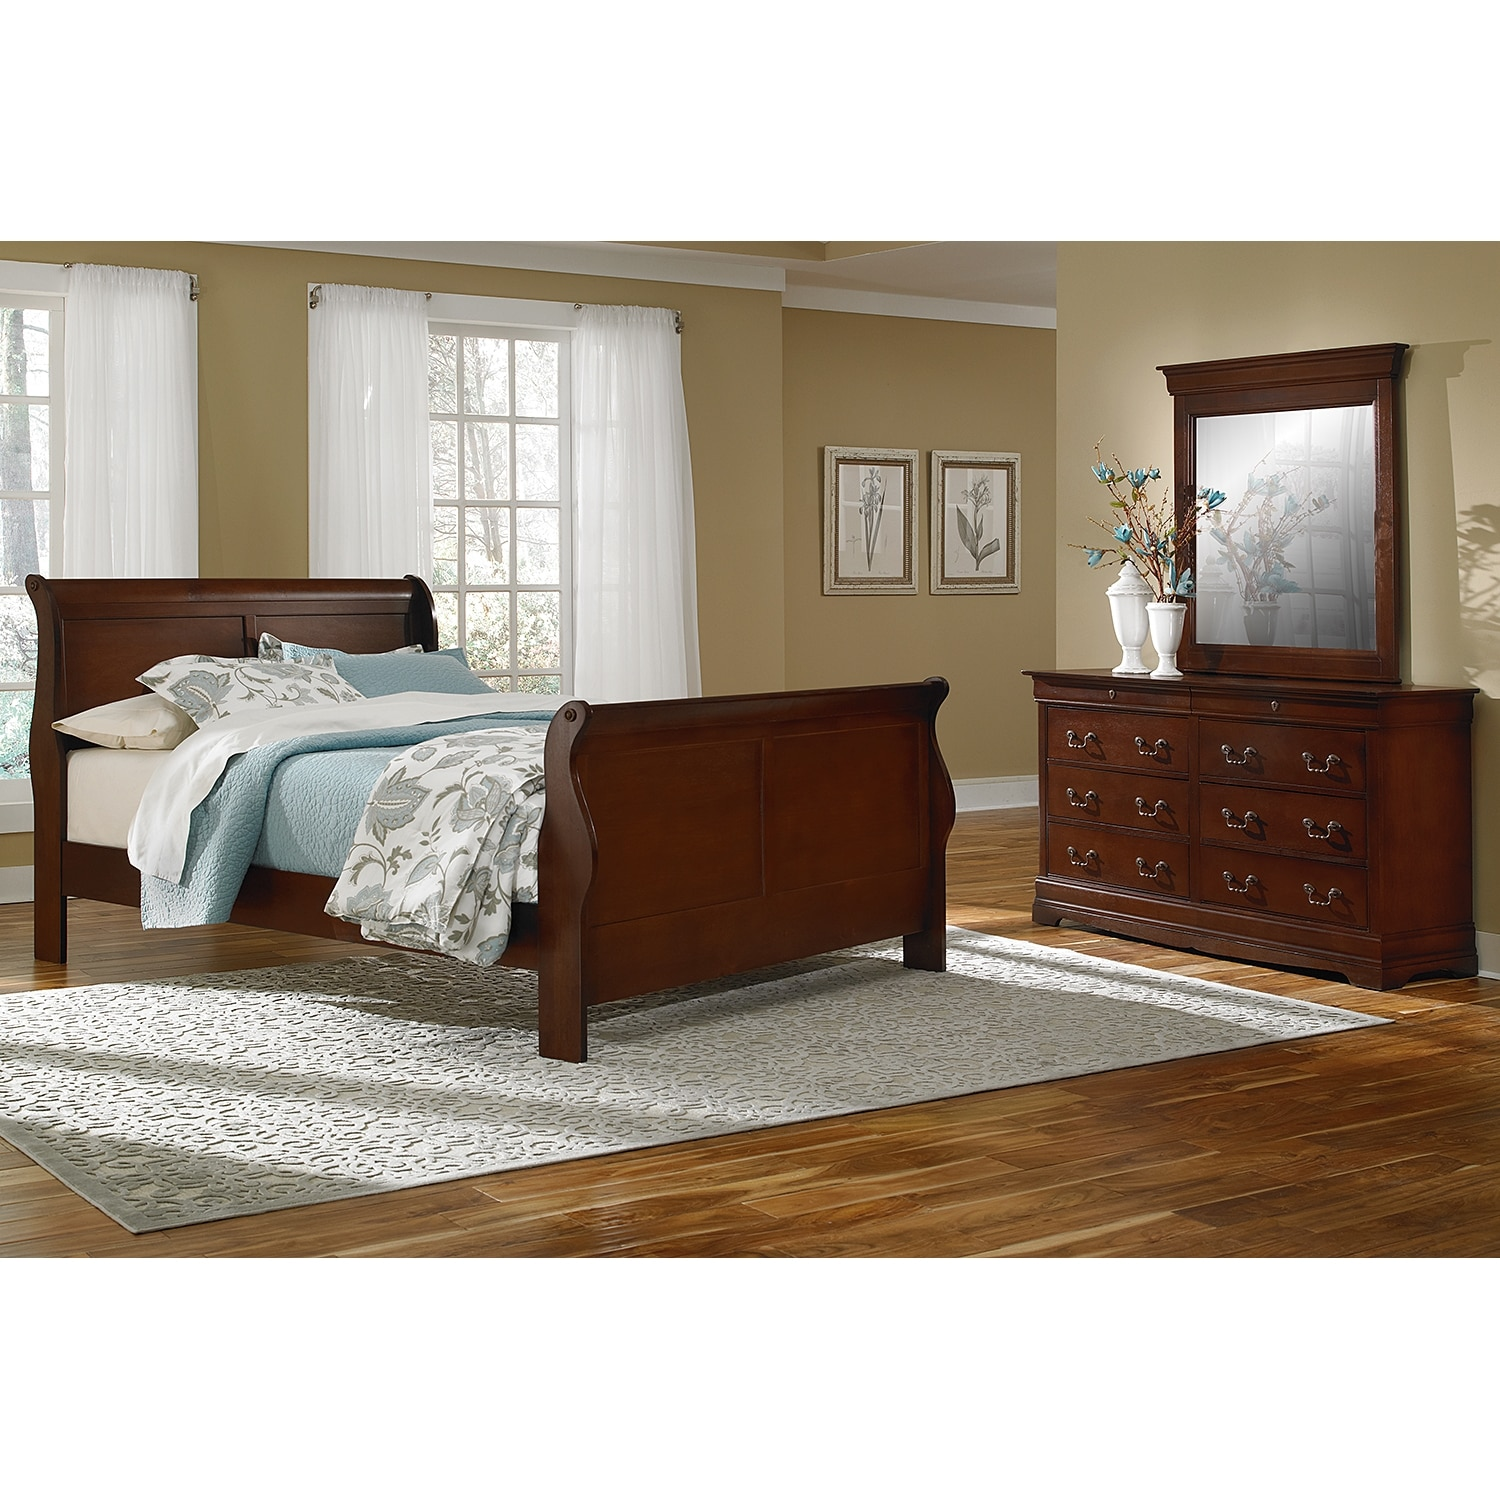 Coming soon for Cherry wood bedroom furniture